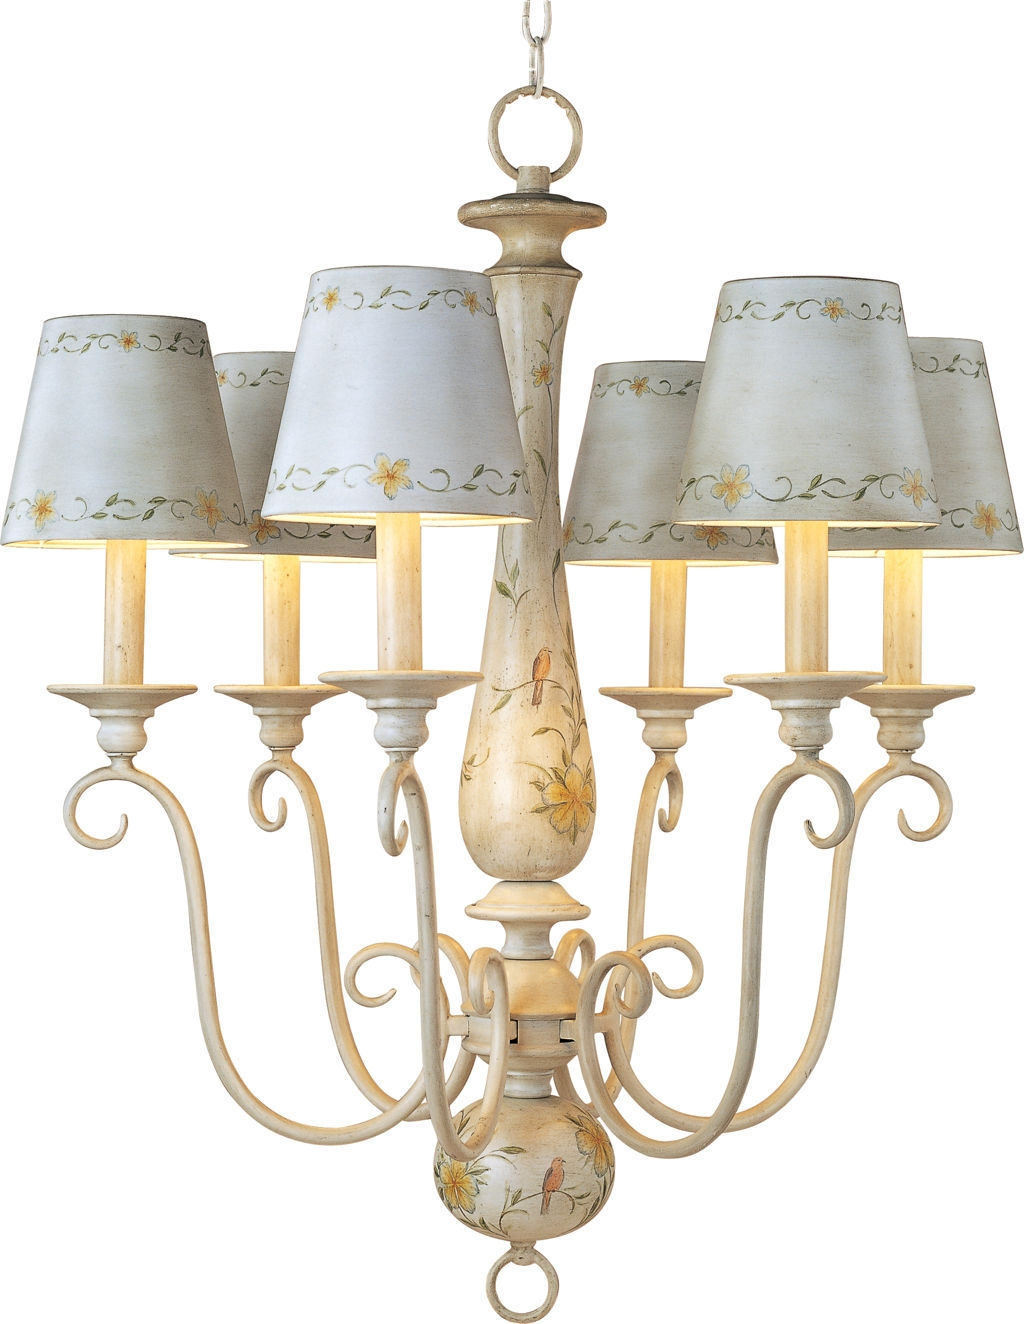 Antique French Country Mini Chandelier With Ceramic Lamp Shades Inside French Style Chandeliers (Image 1 of 15)